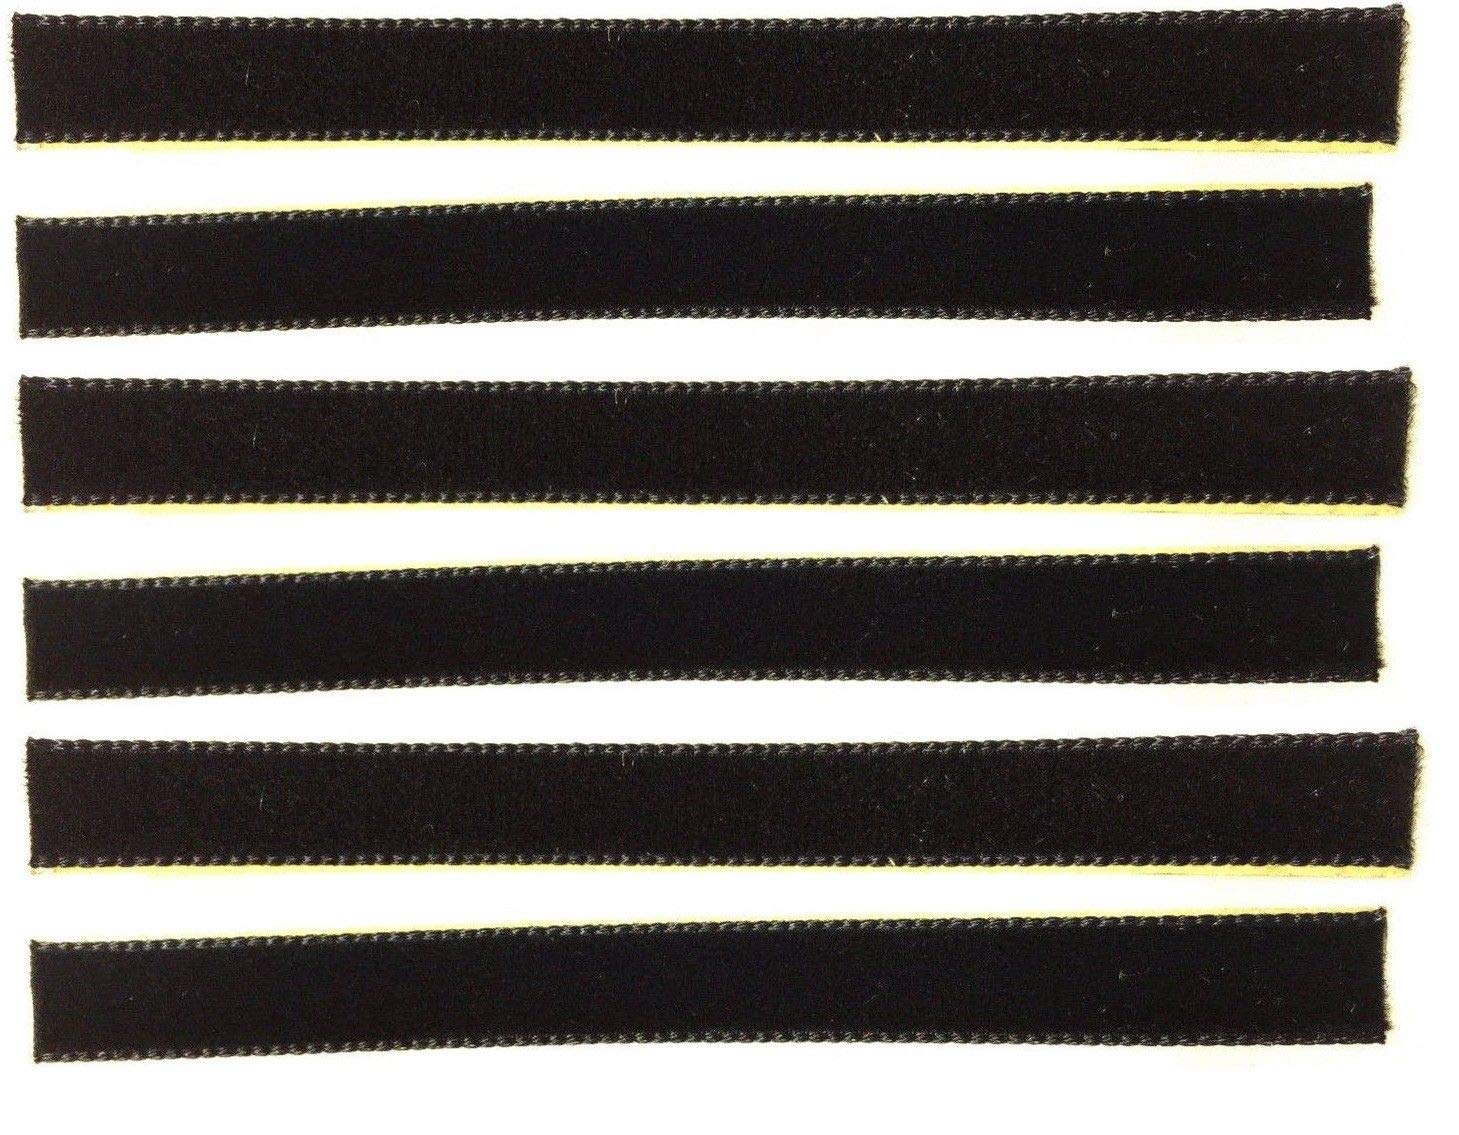 6-Pack of Black Over-Sized VPI Machine/Nitty Gritty/Okki Nokki Replacement LP Vinyl Record Album Cleaning/Cleaner Strips Oversized 3/8'' x 4''